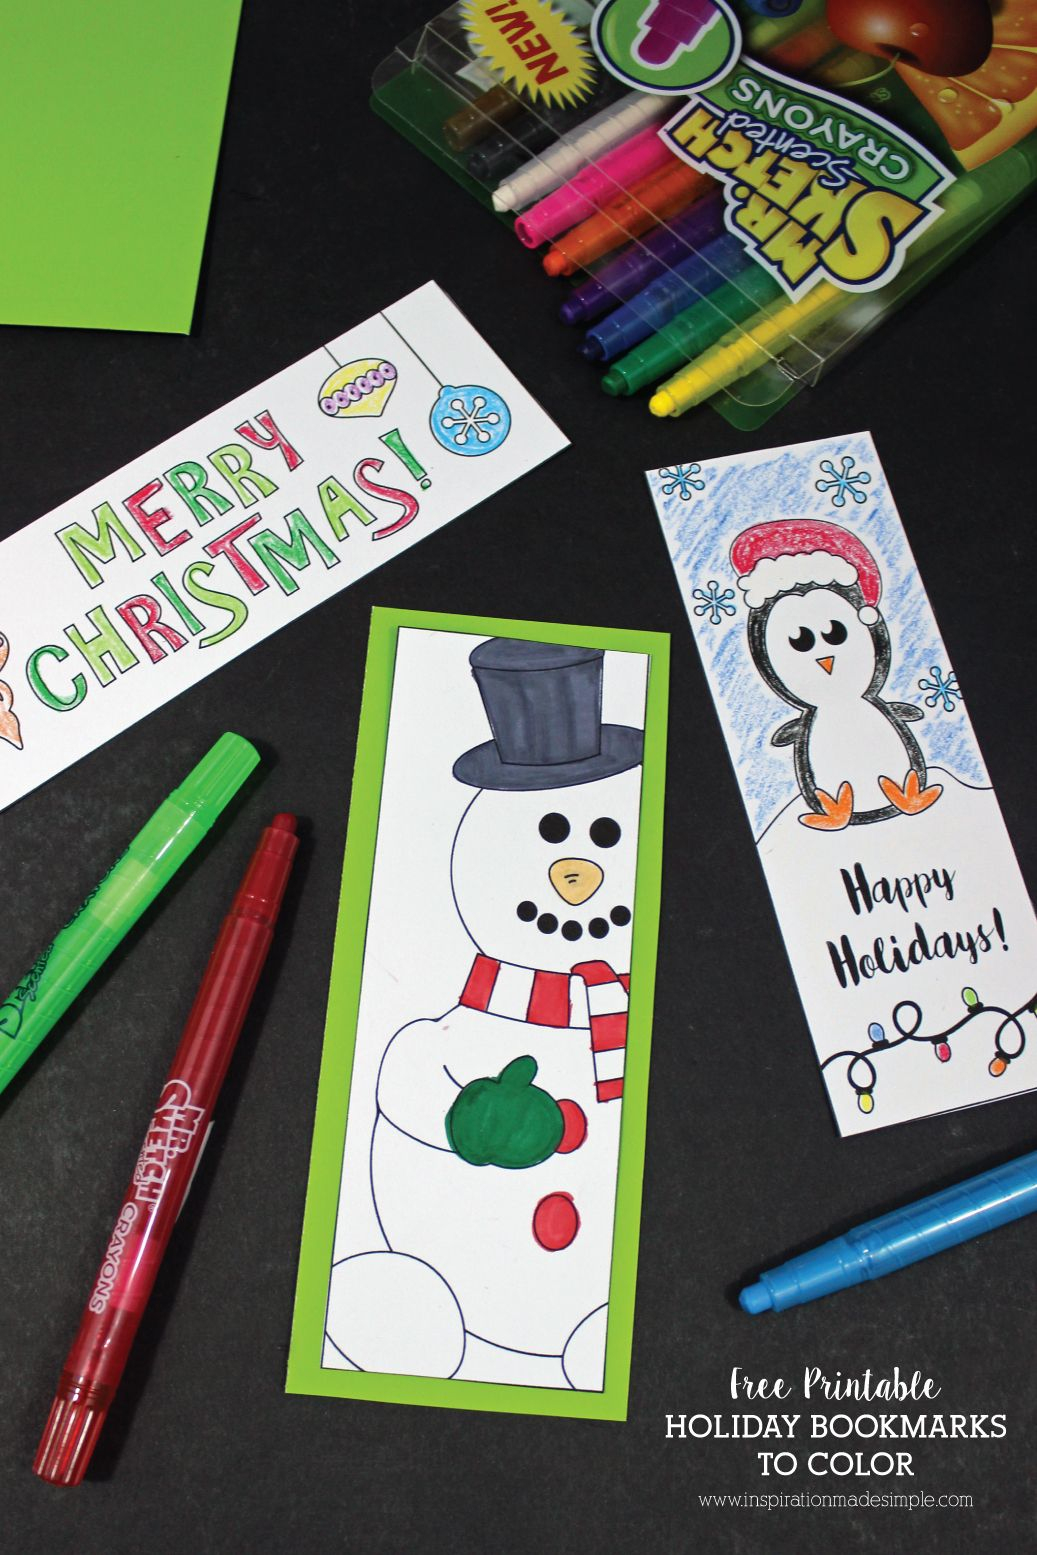 Printable Holiday Bookmarks To Color   Kid Blogger Network - Free Printable Christmas Bookmarks To Color